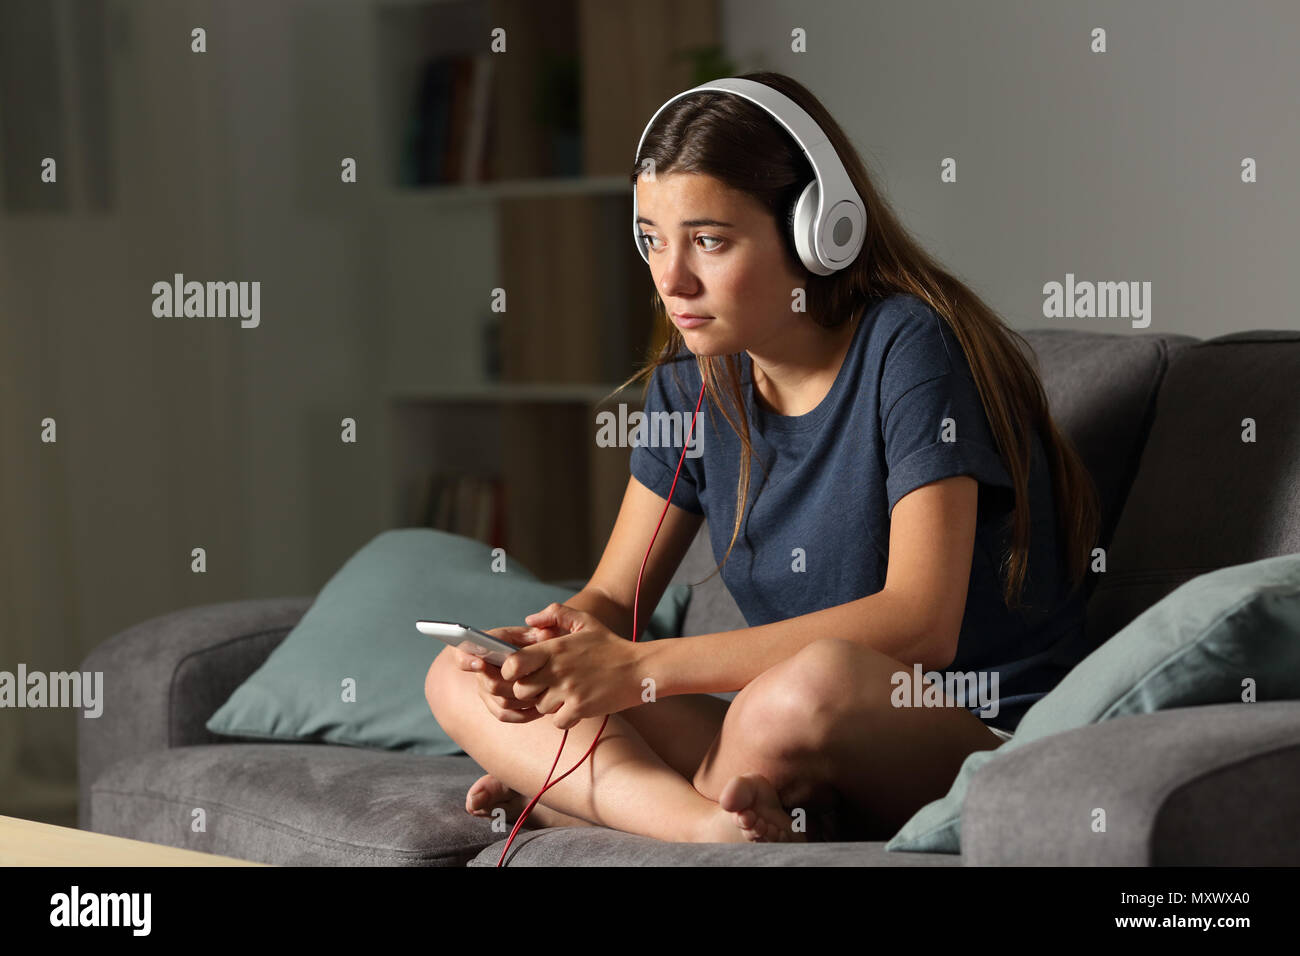 Full body portrait of a sad teen listening to music alone sitting on a couch in the living room at home